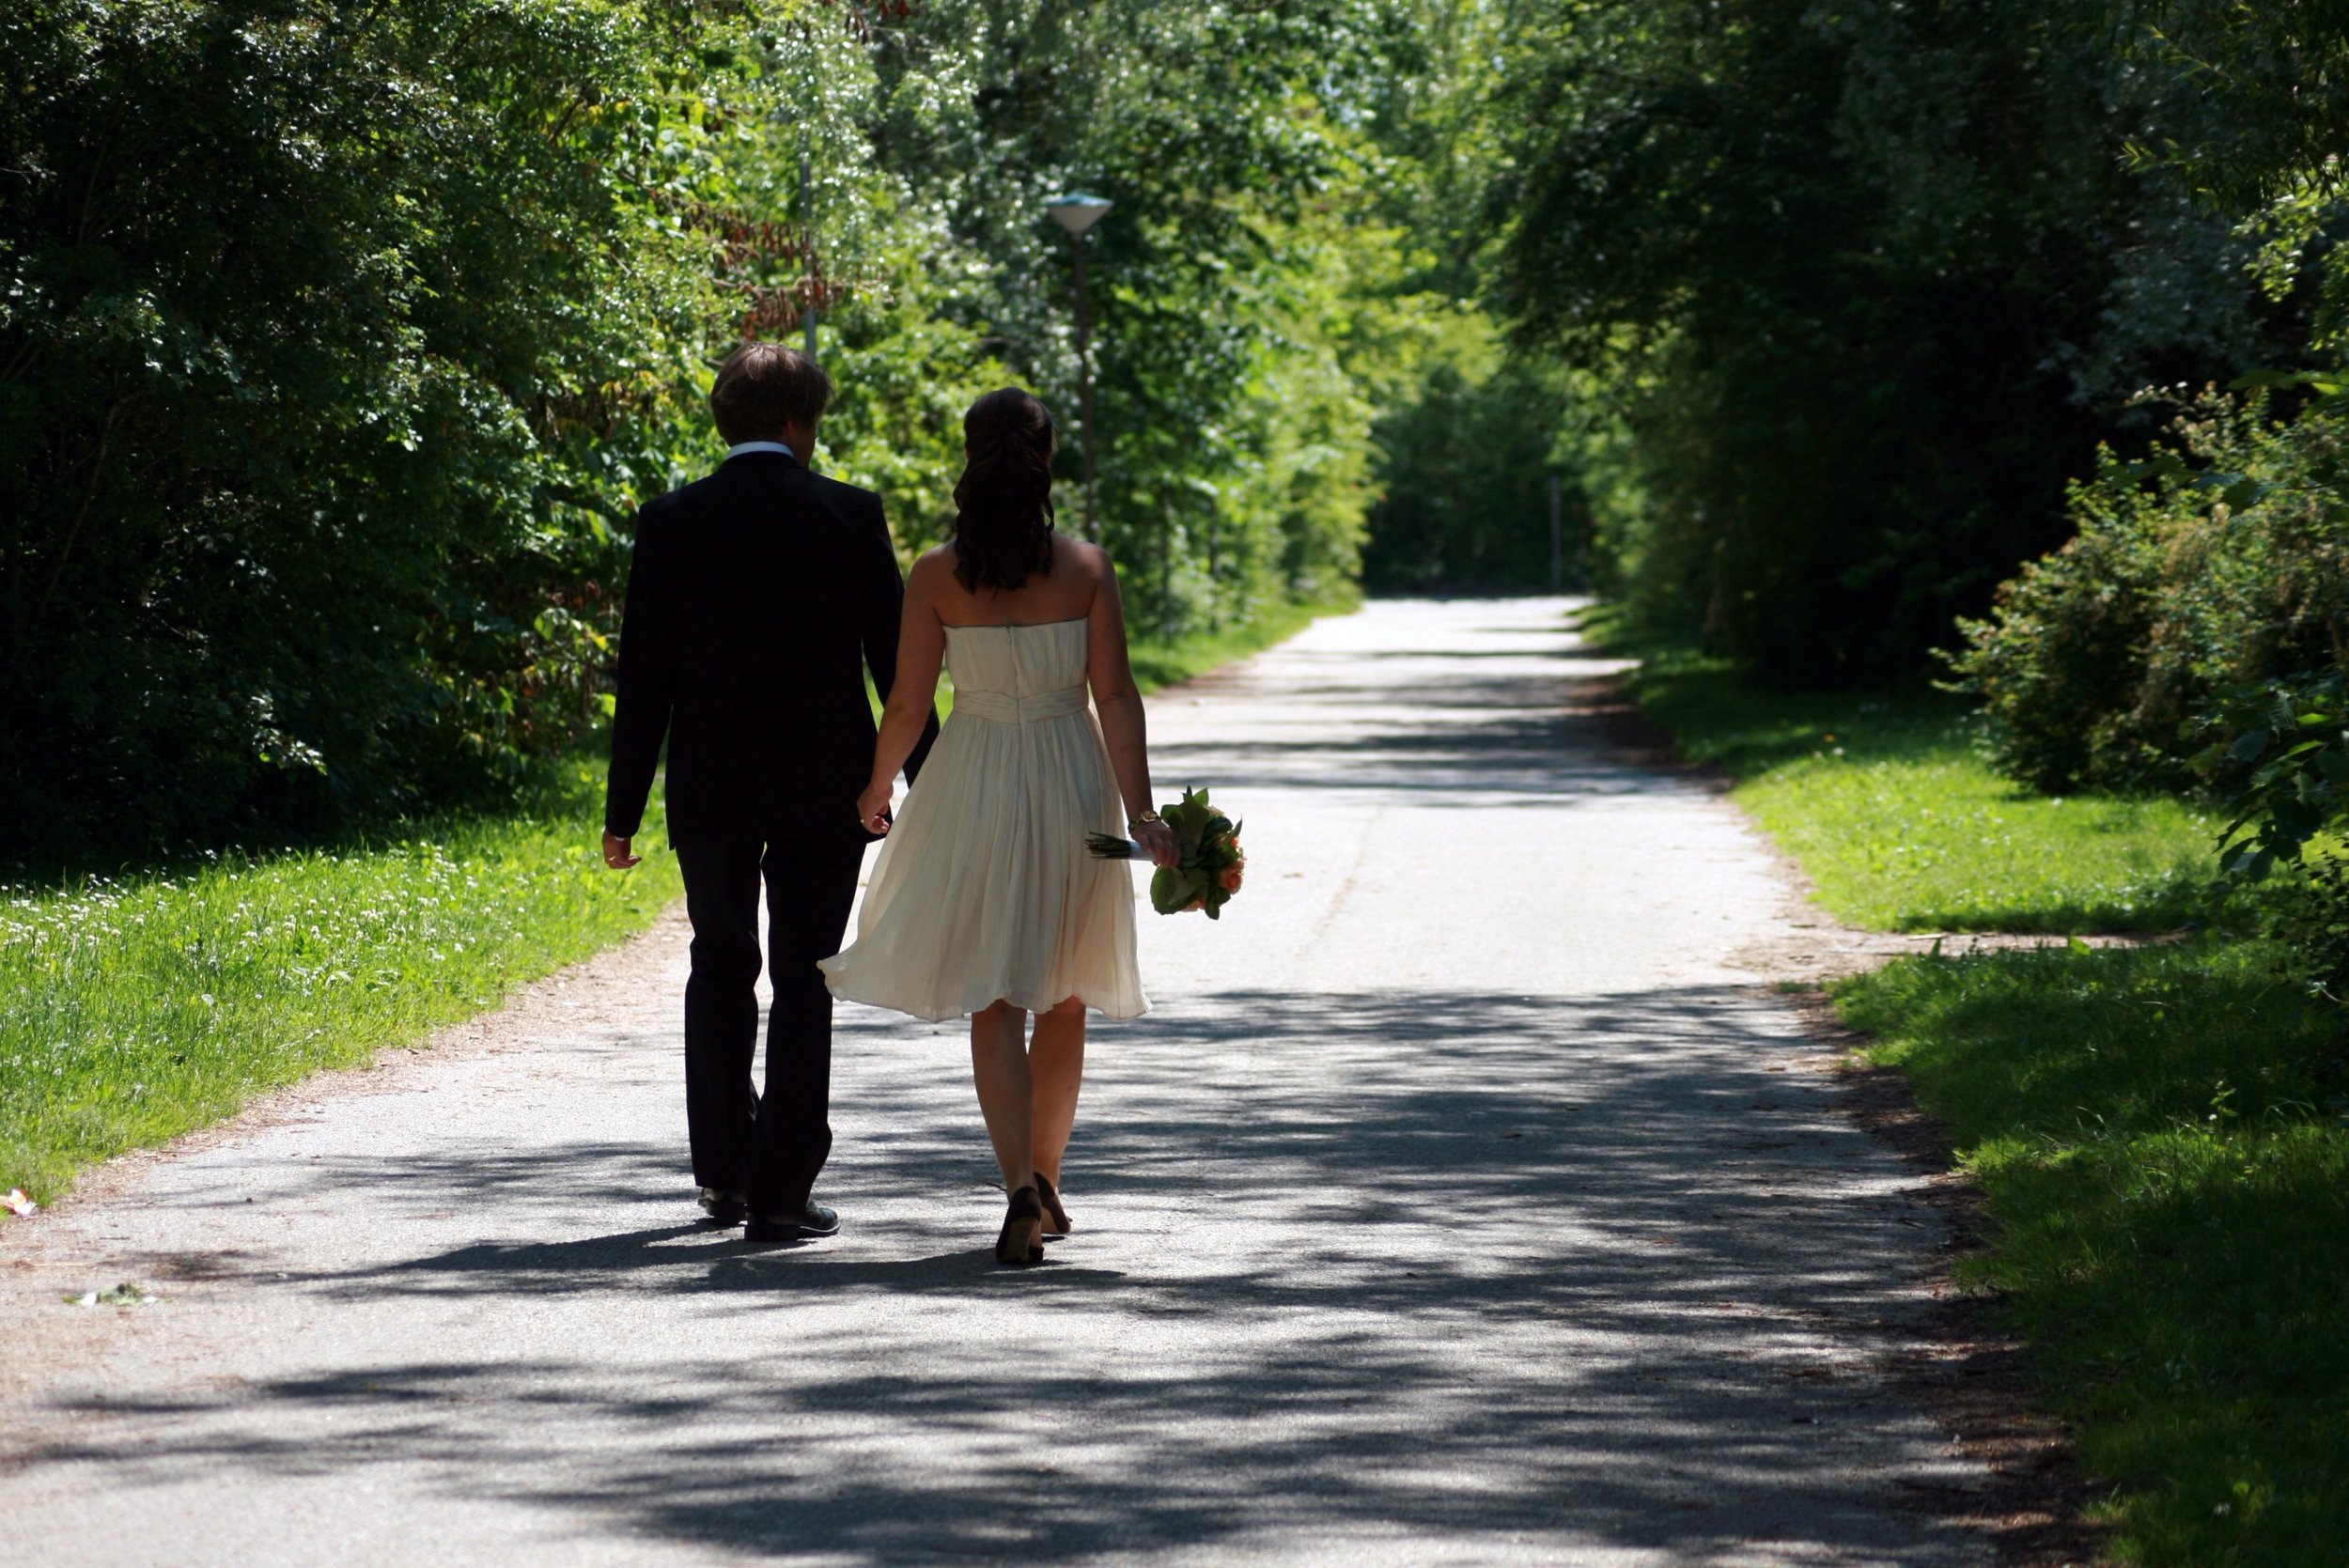 Married couple walking down country road.